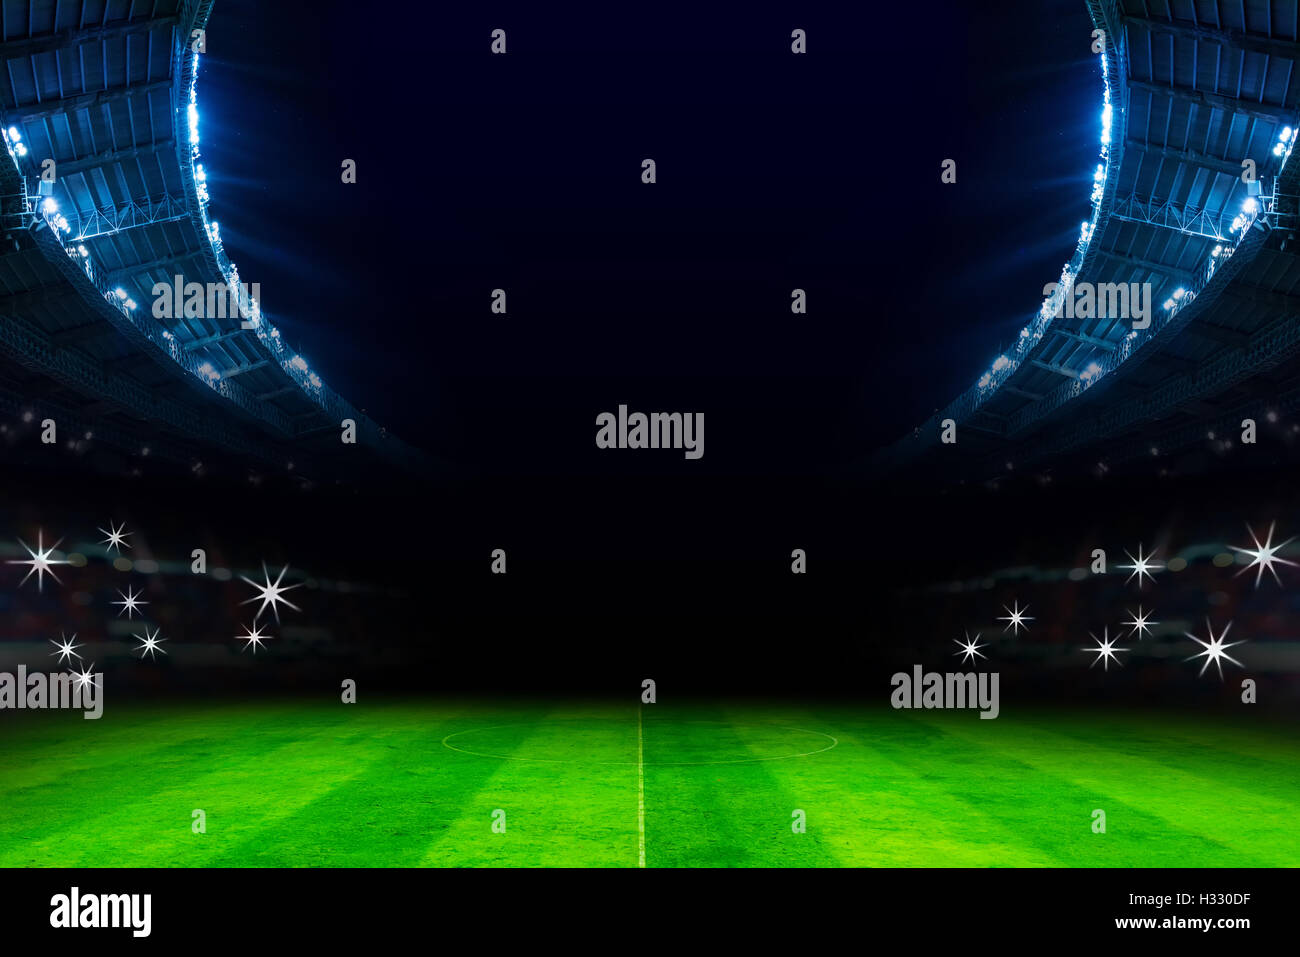 lights in soccer stadium at night match - Stock Image